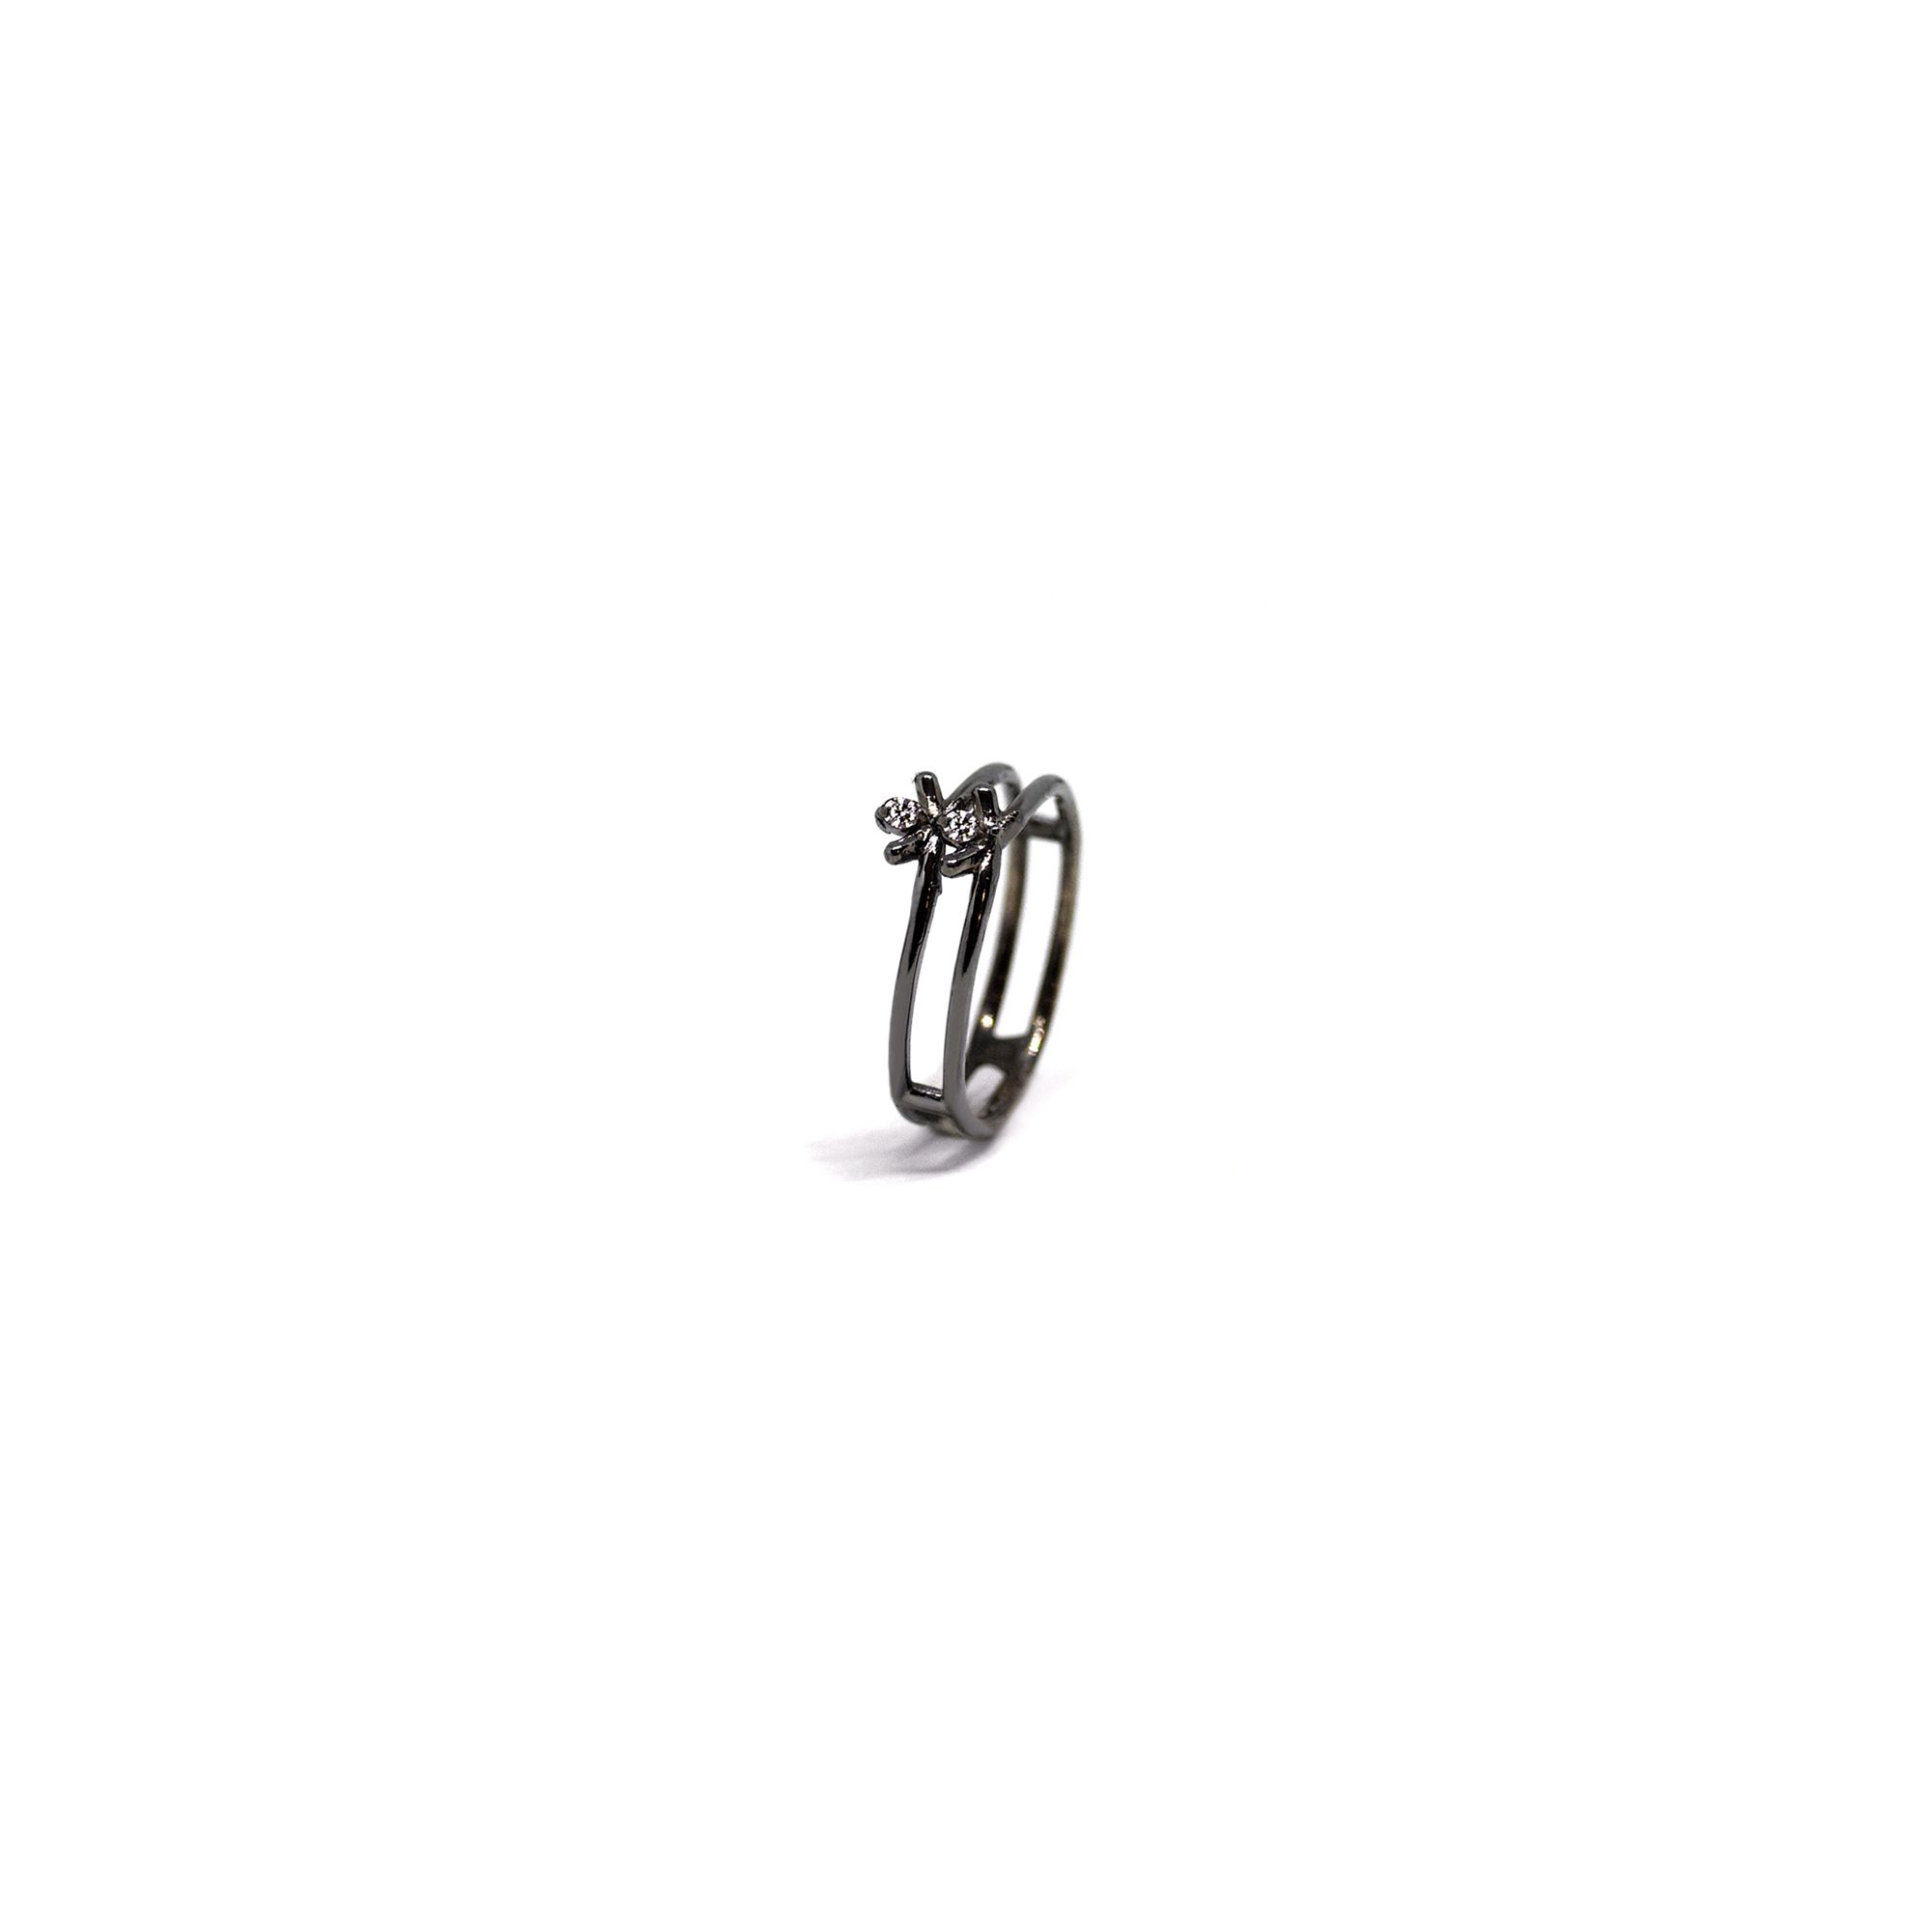 2 element 'Spinae' ring Ring in black silver